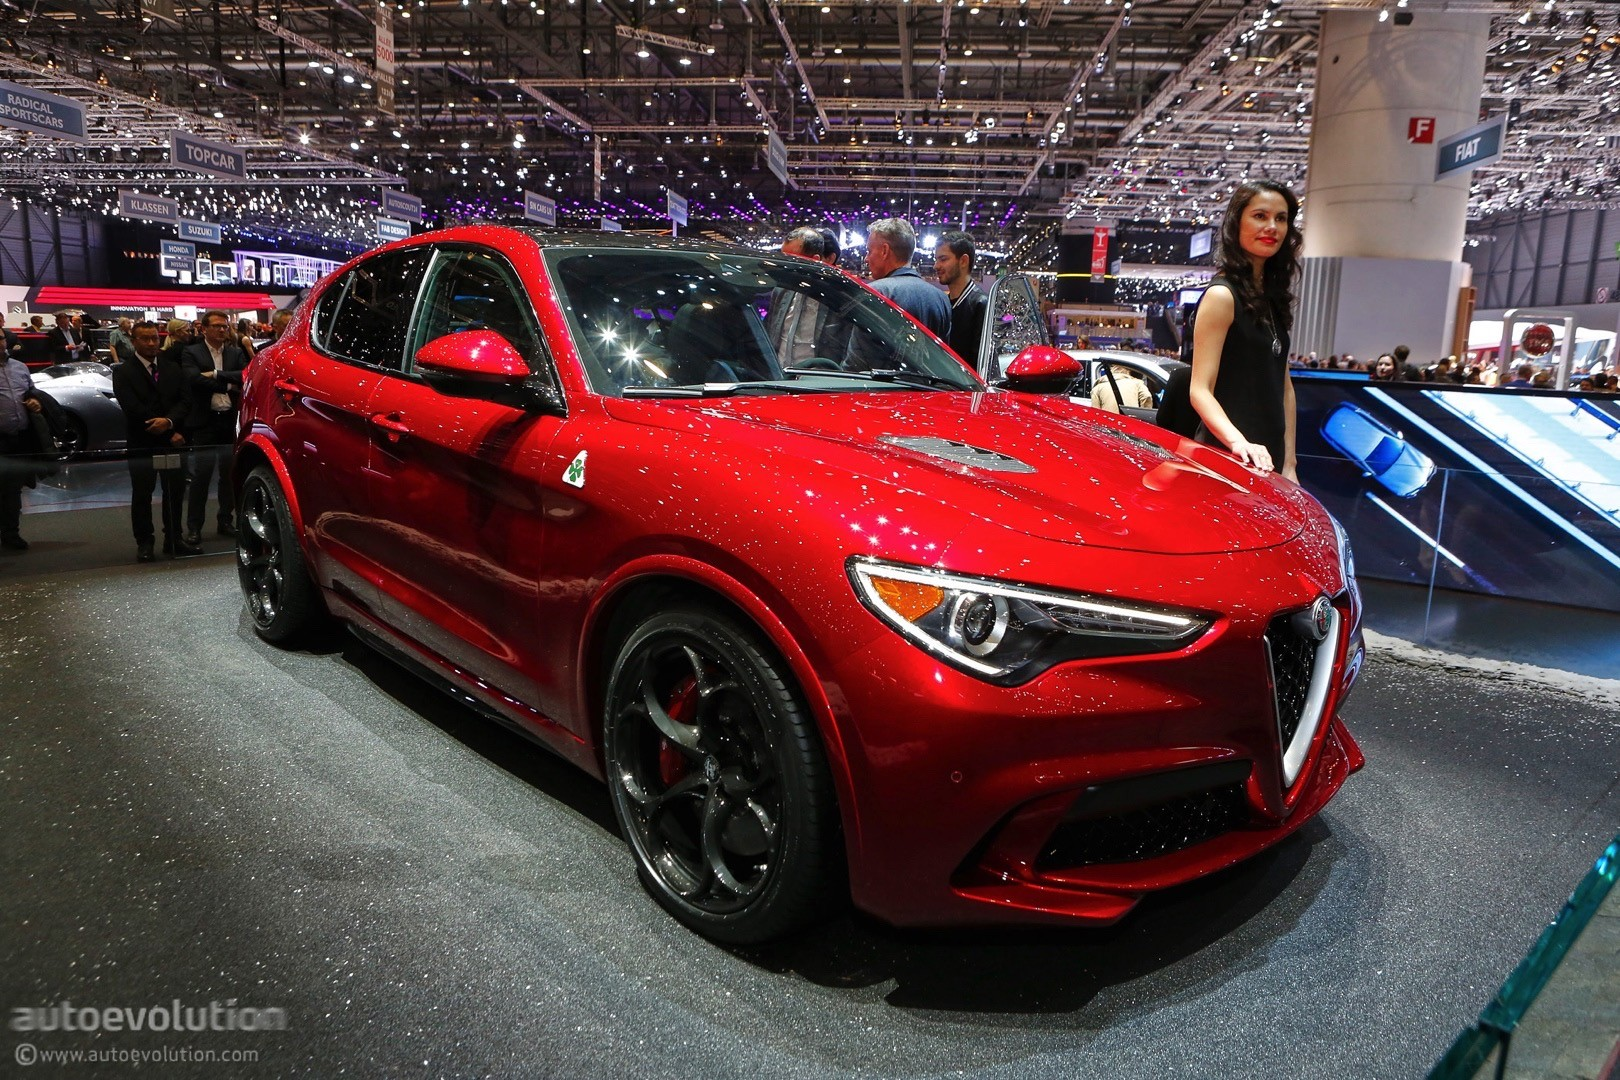 2018 alfa romeo stelvio priced from 41 995 in the u s. Black Bedroom Furniture Sets. Home Design Ideas